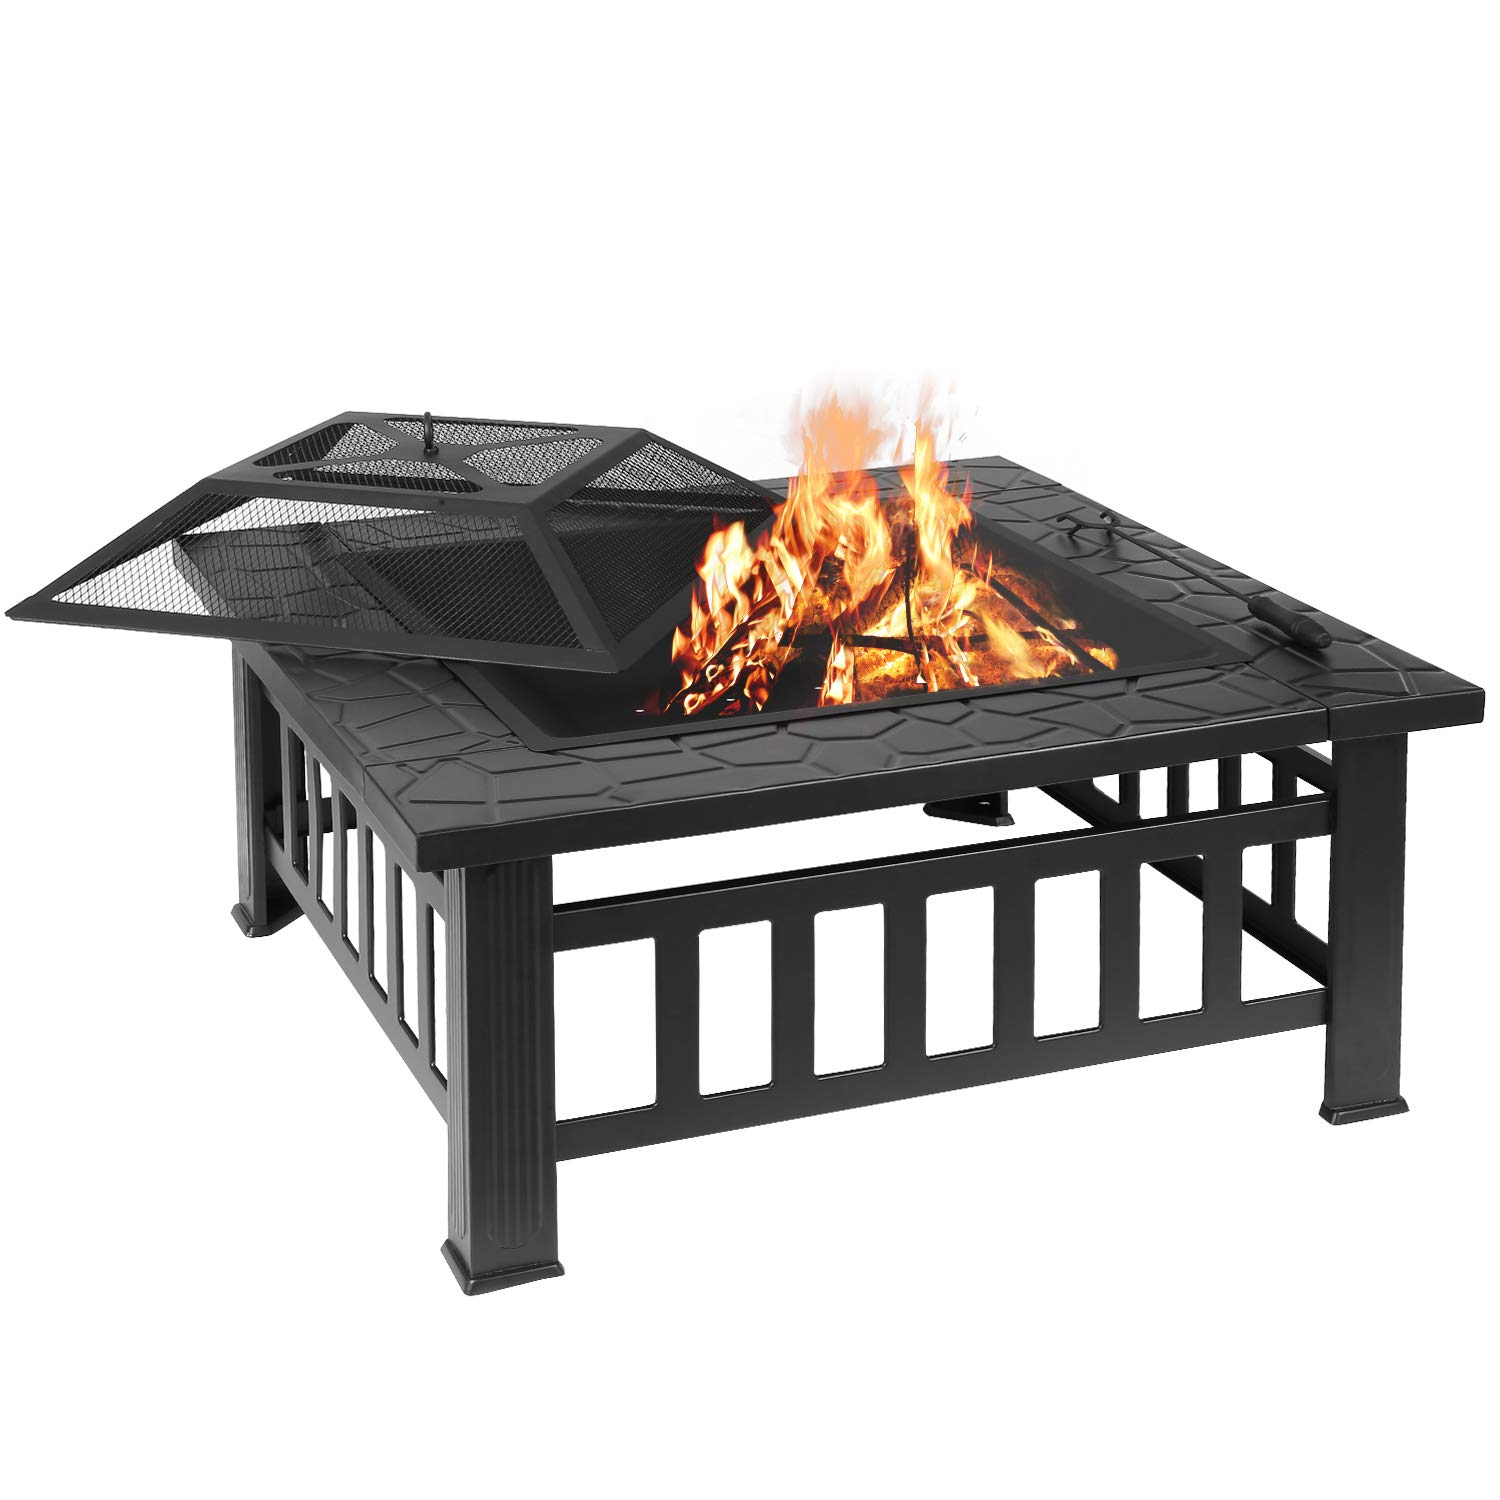 femor Fire Pit Table Outdoor, Multifunctional Patio Backyard Garden Fireplace Heater/BBQ/Ice Pit, 32'' Square Stove with Barbecue Grill Shelf and Waterproof Cover